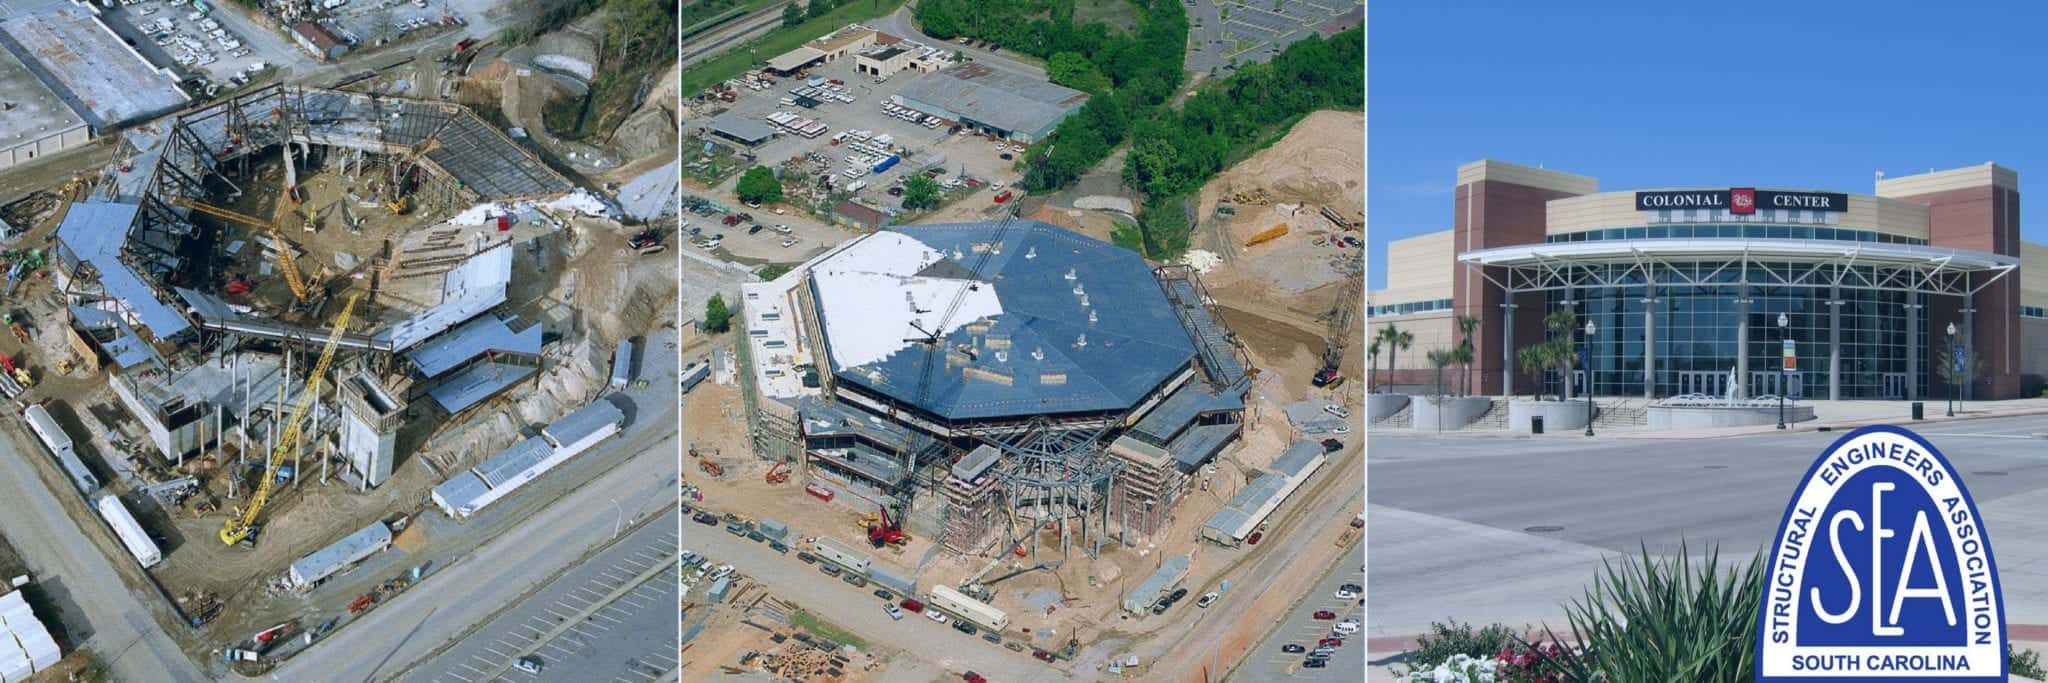 SEASC helped build the Colonial Life Arena here in Columbia SC